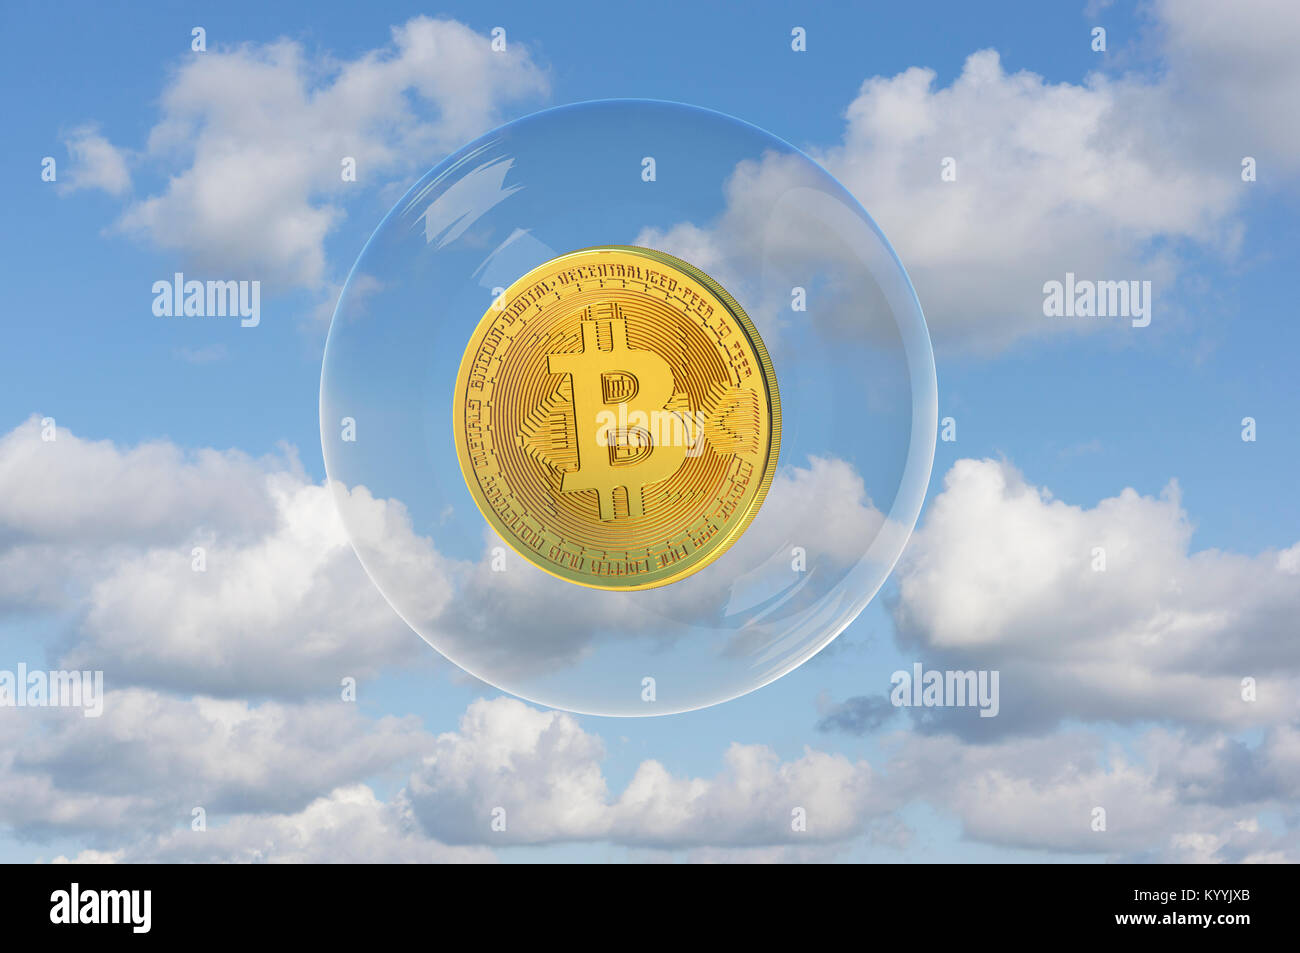 Bitcoin floating in a bubble - valuation concept - Stock Image